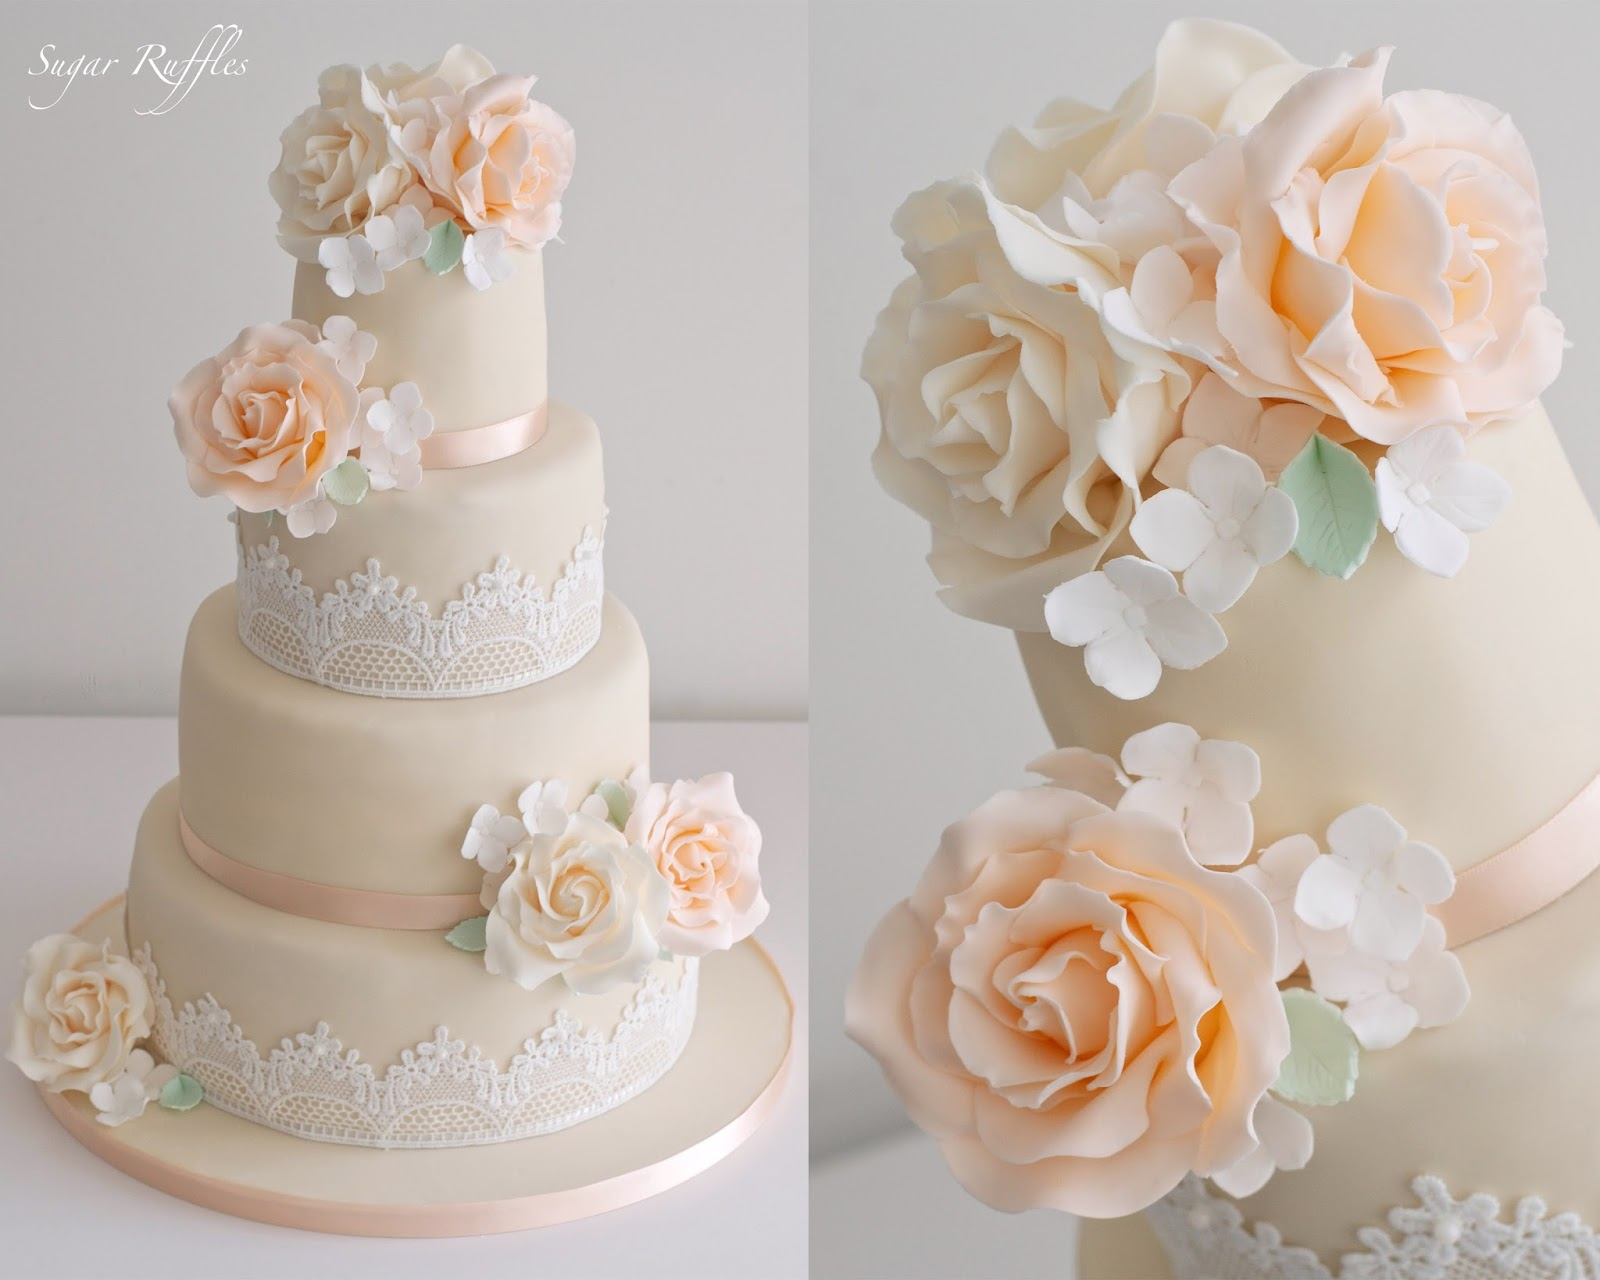 Wedding Cakes (continued)